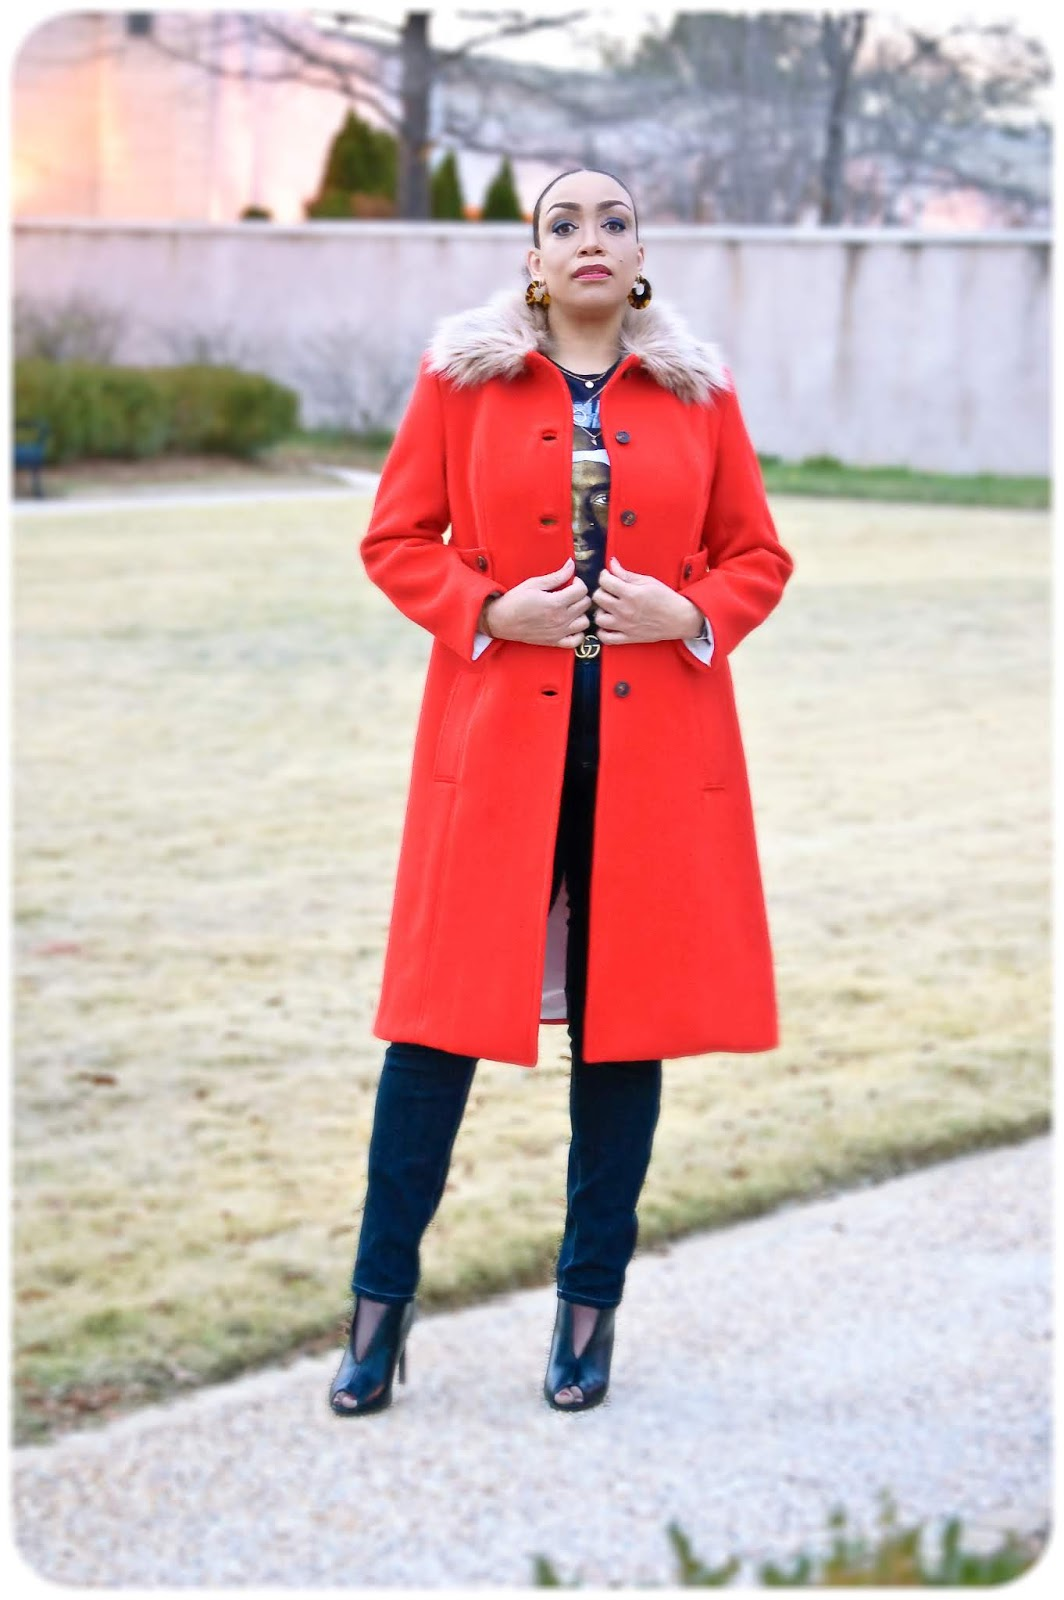 Simplicity 4403 - Fur-Trimmed Red Wool Coat - Erica Bunker DIY Style!